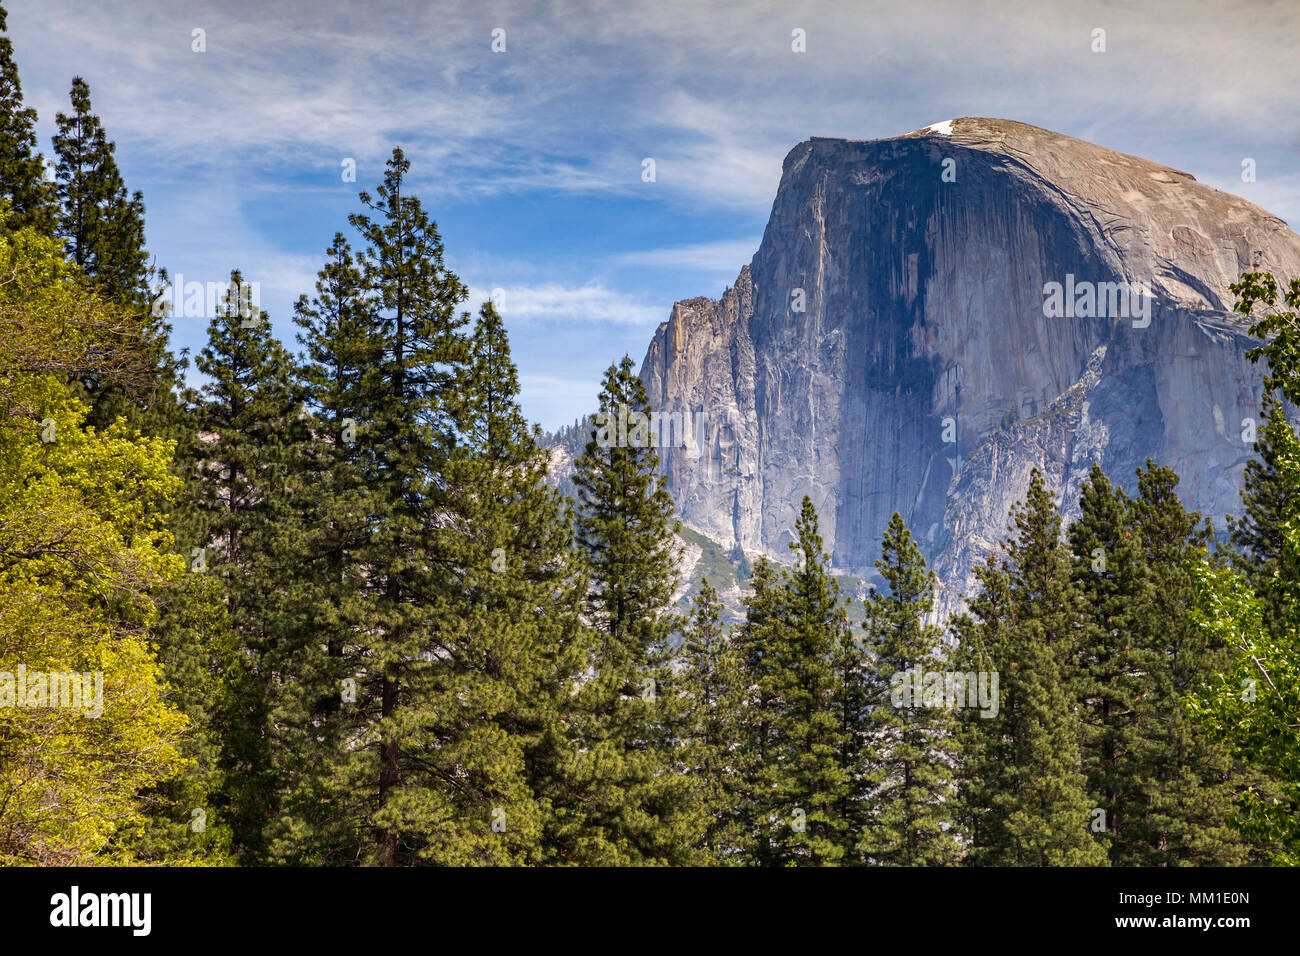 Half Dome, Yosemite National Park, California, USA,mountain,dome,national park,yosemite,Californian,america,american,trees,landscape,landscapes,scenic - Stock Image